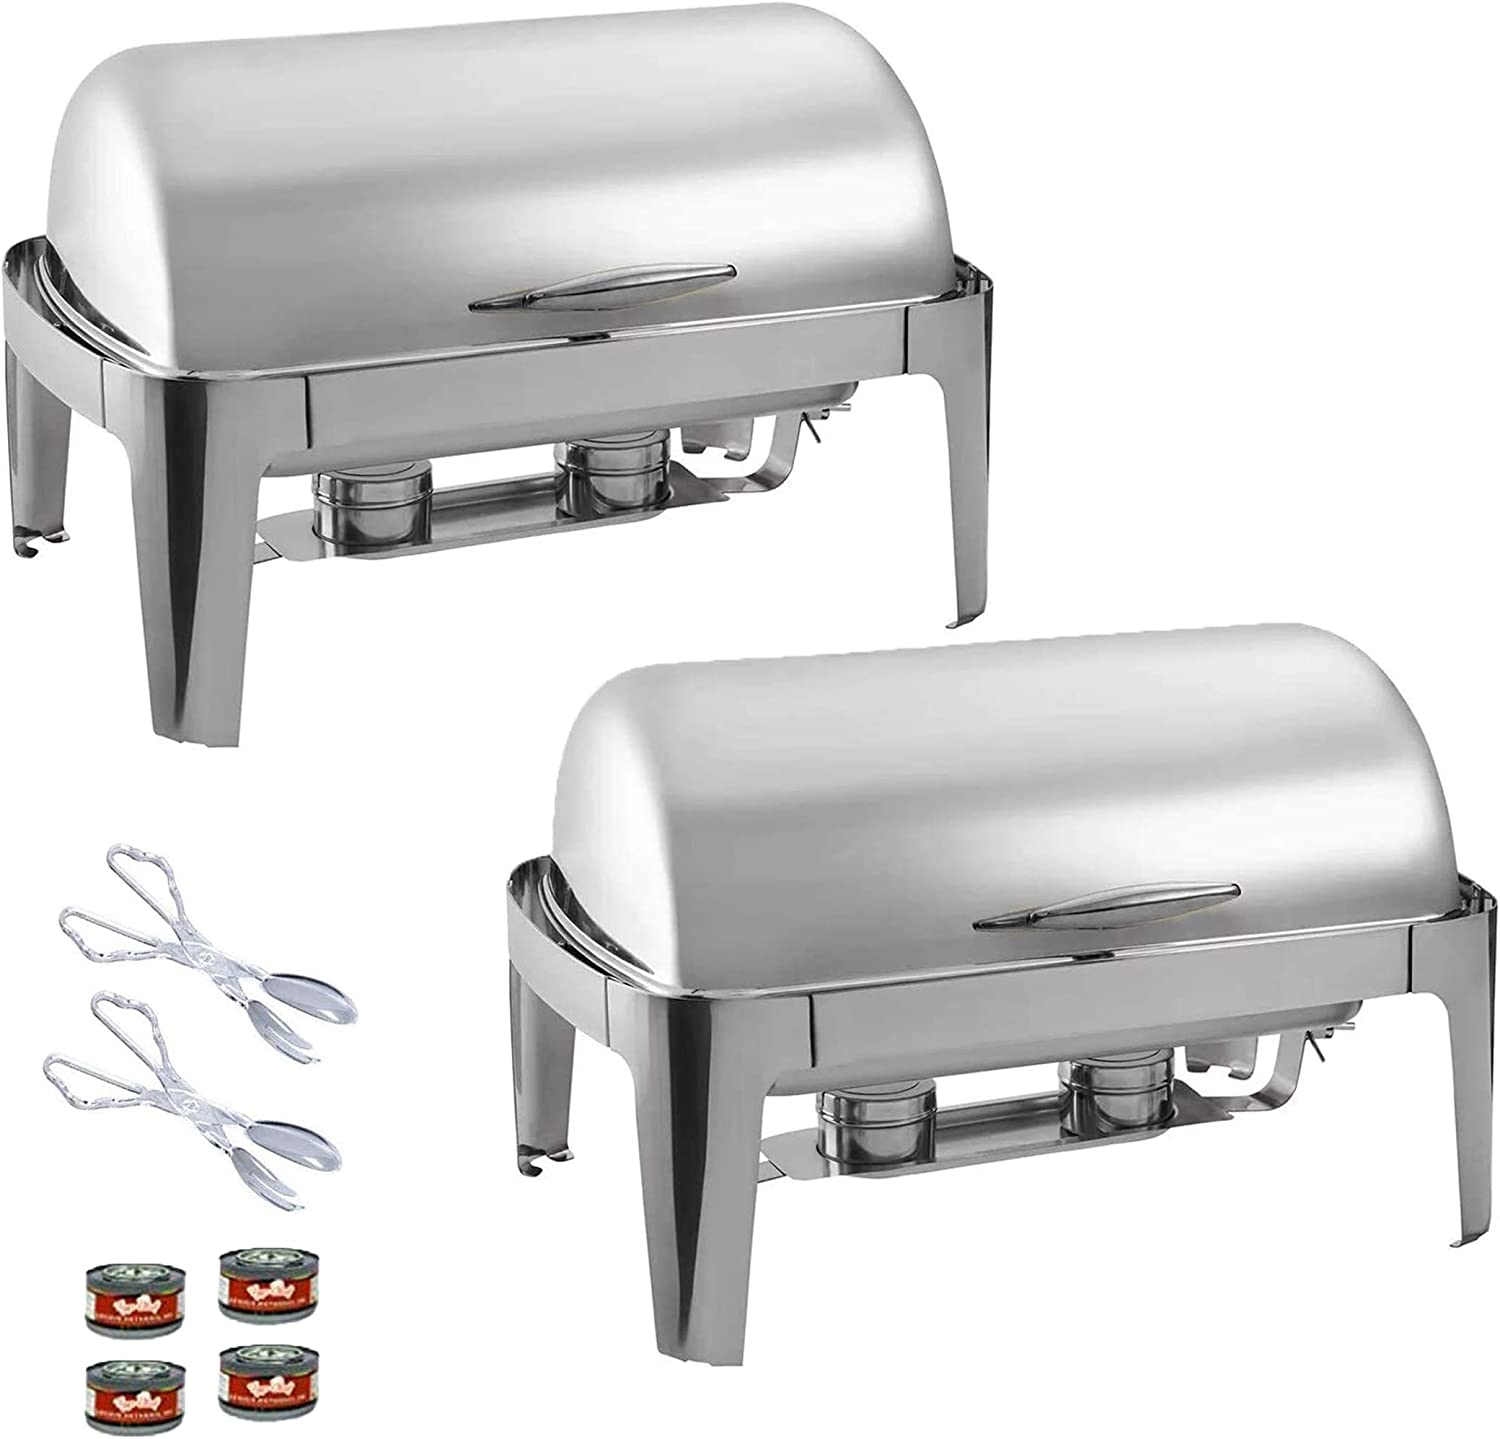 TigerChef Chafing Dish Buffet Set - Roll Top Chaffing Dishes Stainless Steel - 2 Chafer and Buffet Warmer Set with 4 Fuel Gel and 2 Plastic Tongs